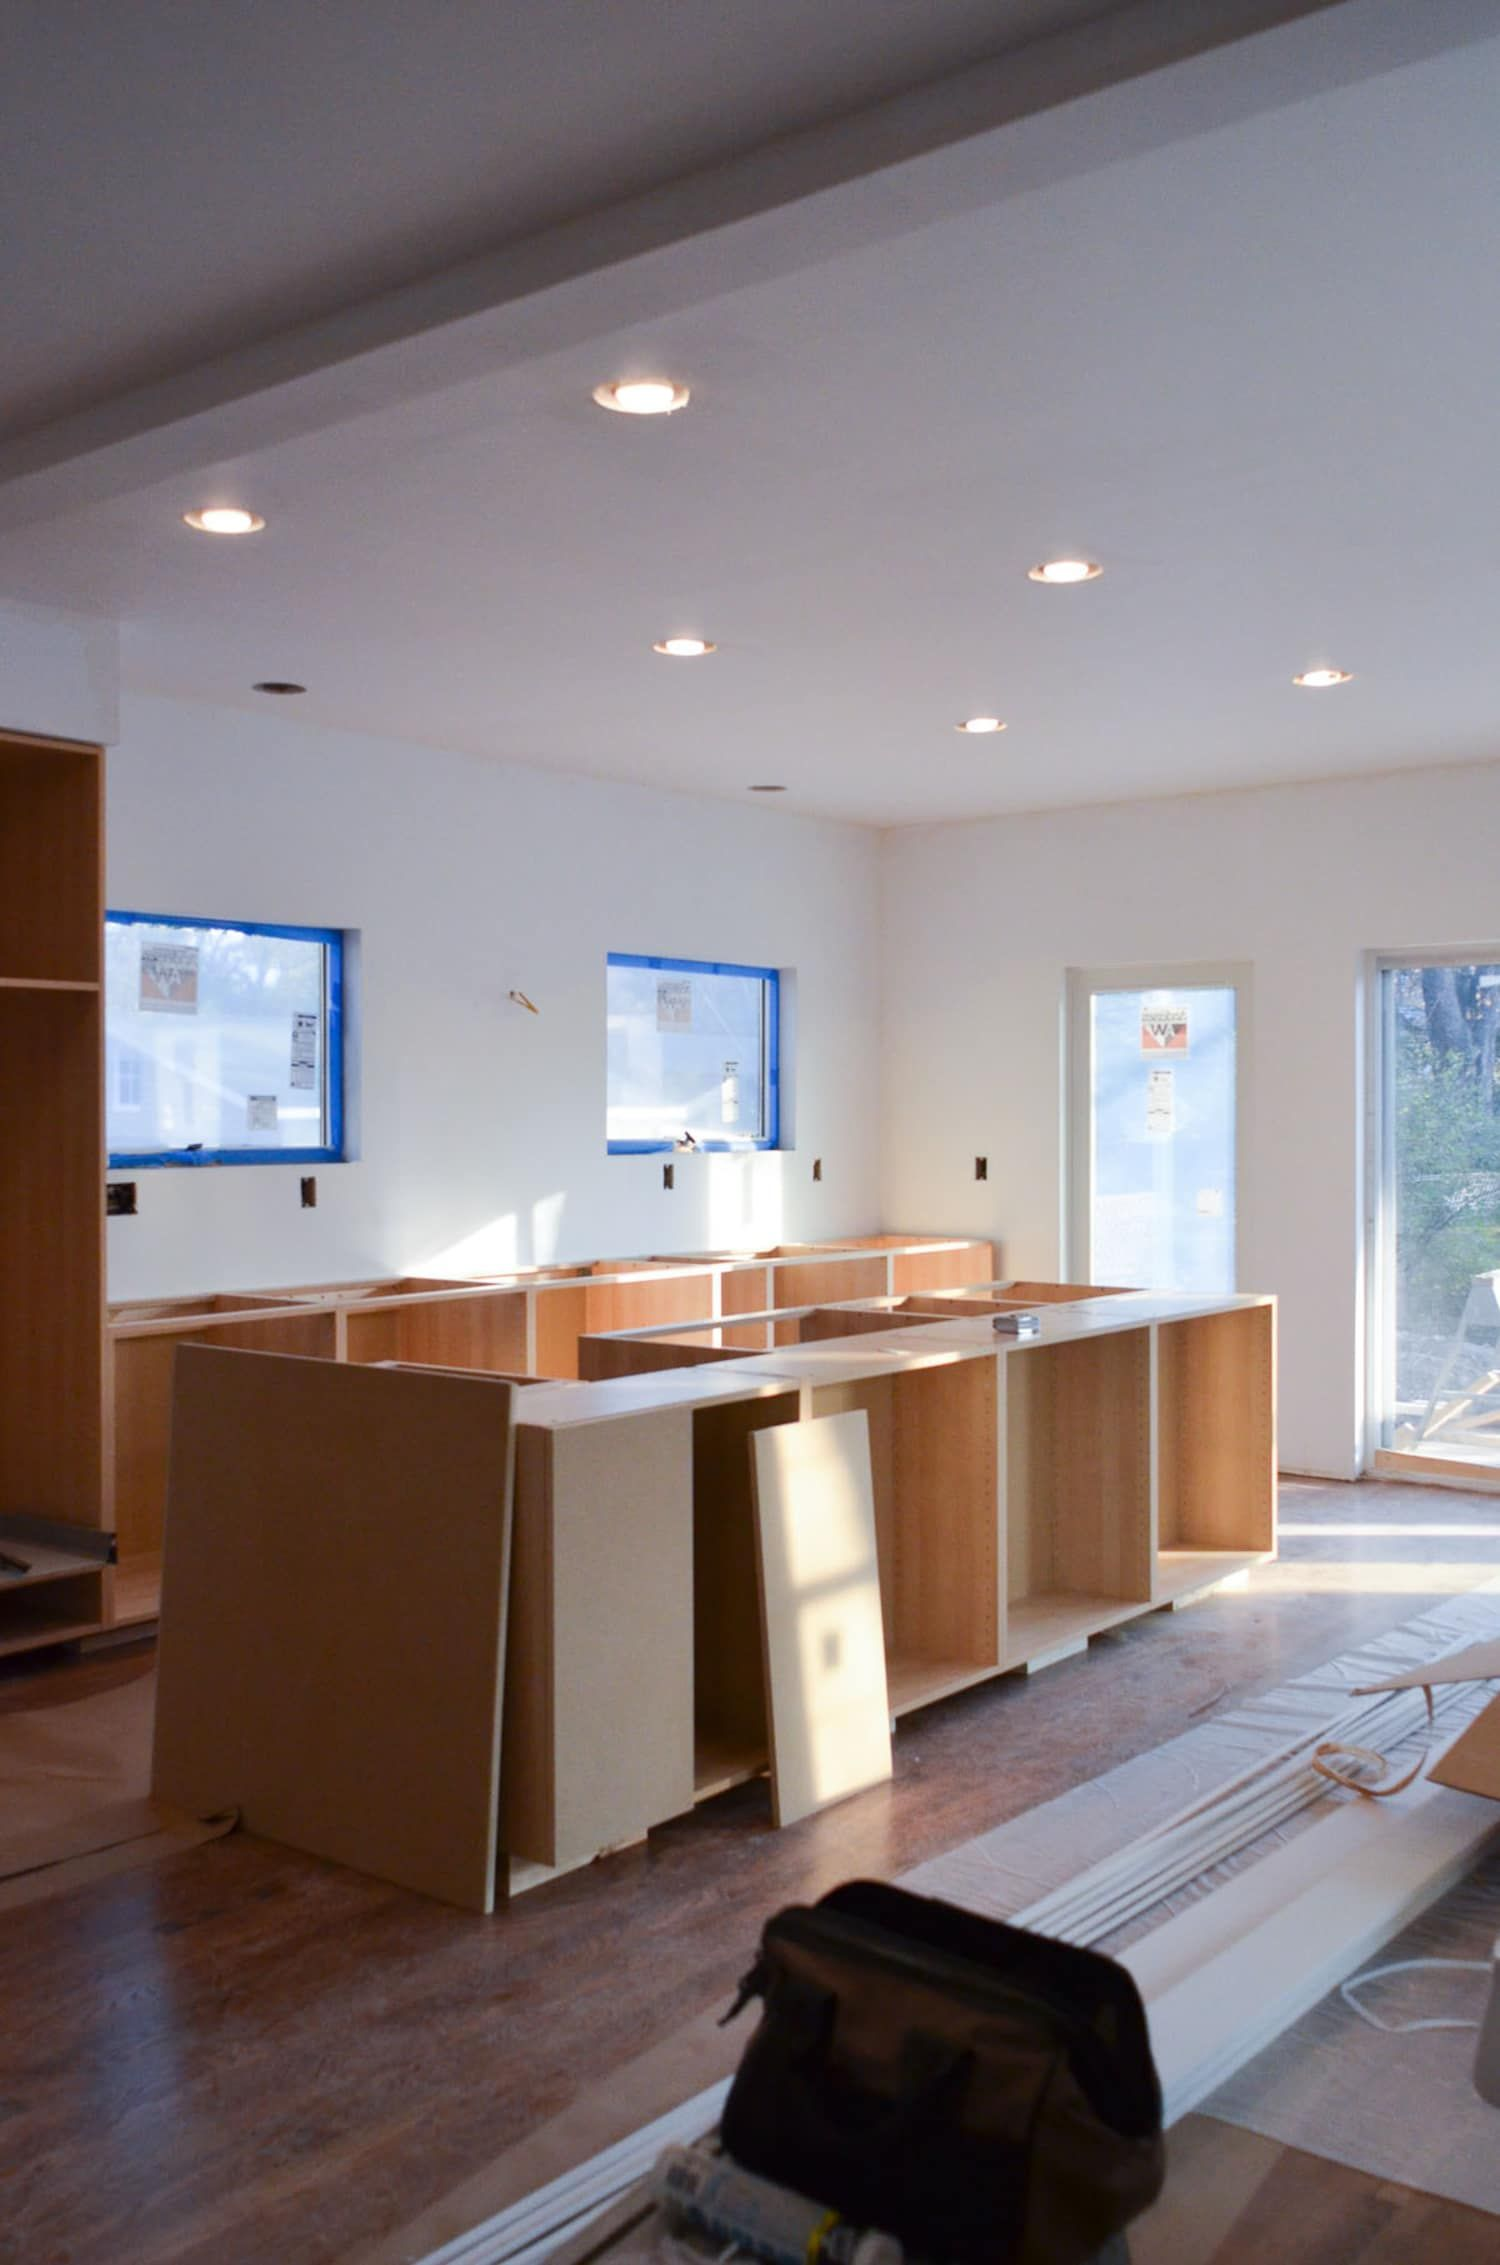 5 gorgeous kitchen renovations that cost less than 5 000 budget kitchen remodel diy kitchen on kitchen remodel under 5000 id=68503